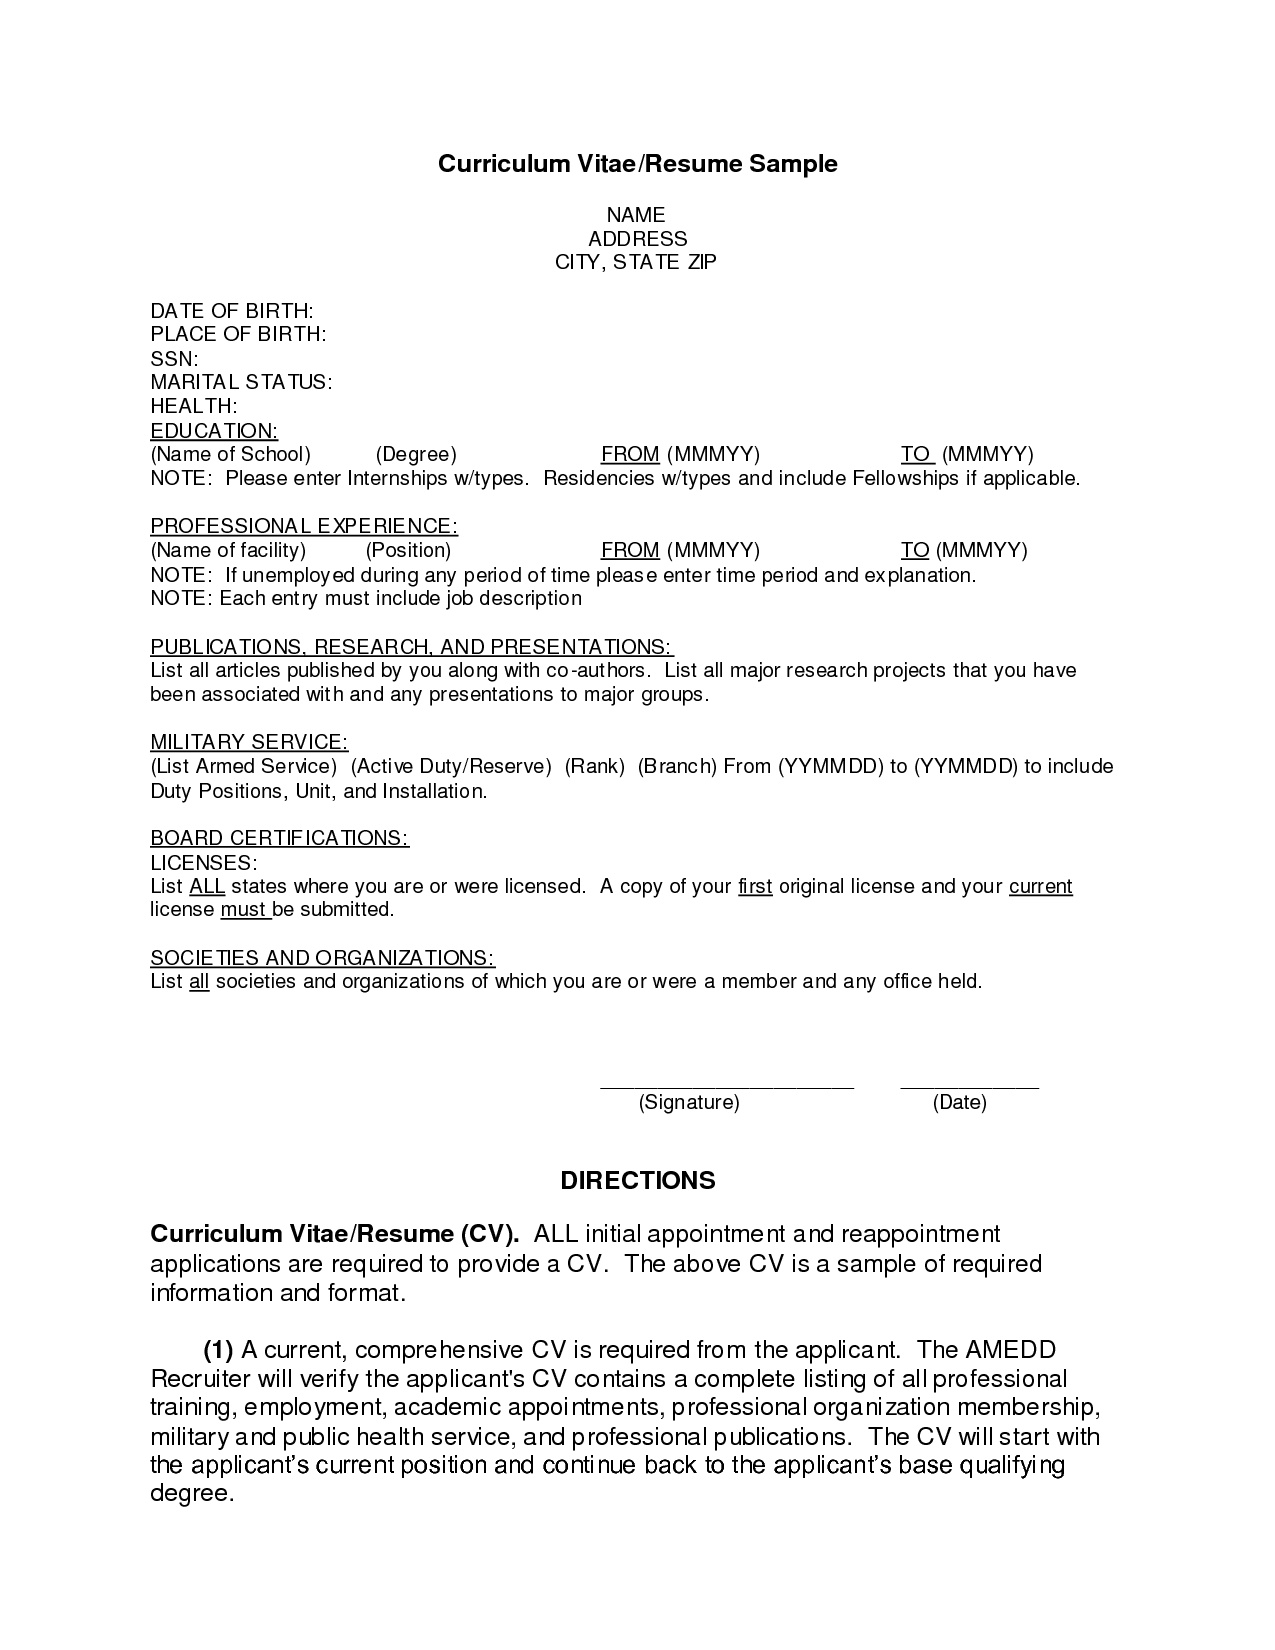 Resume Format After First Job